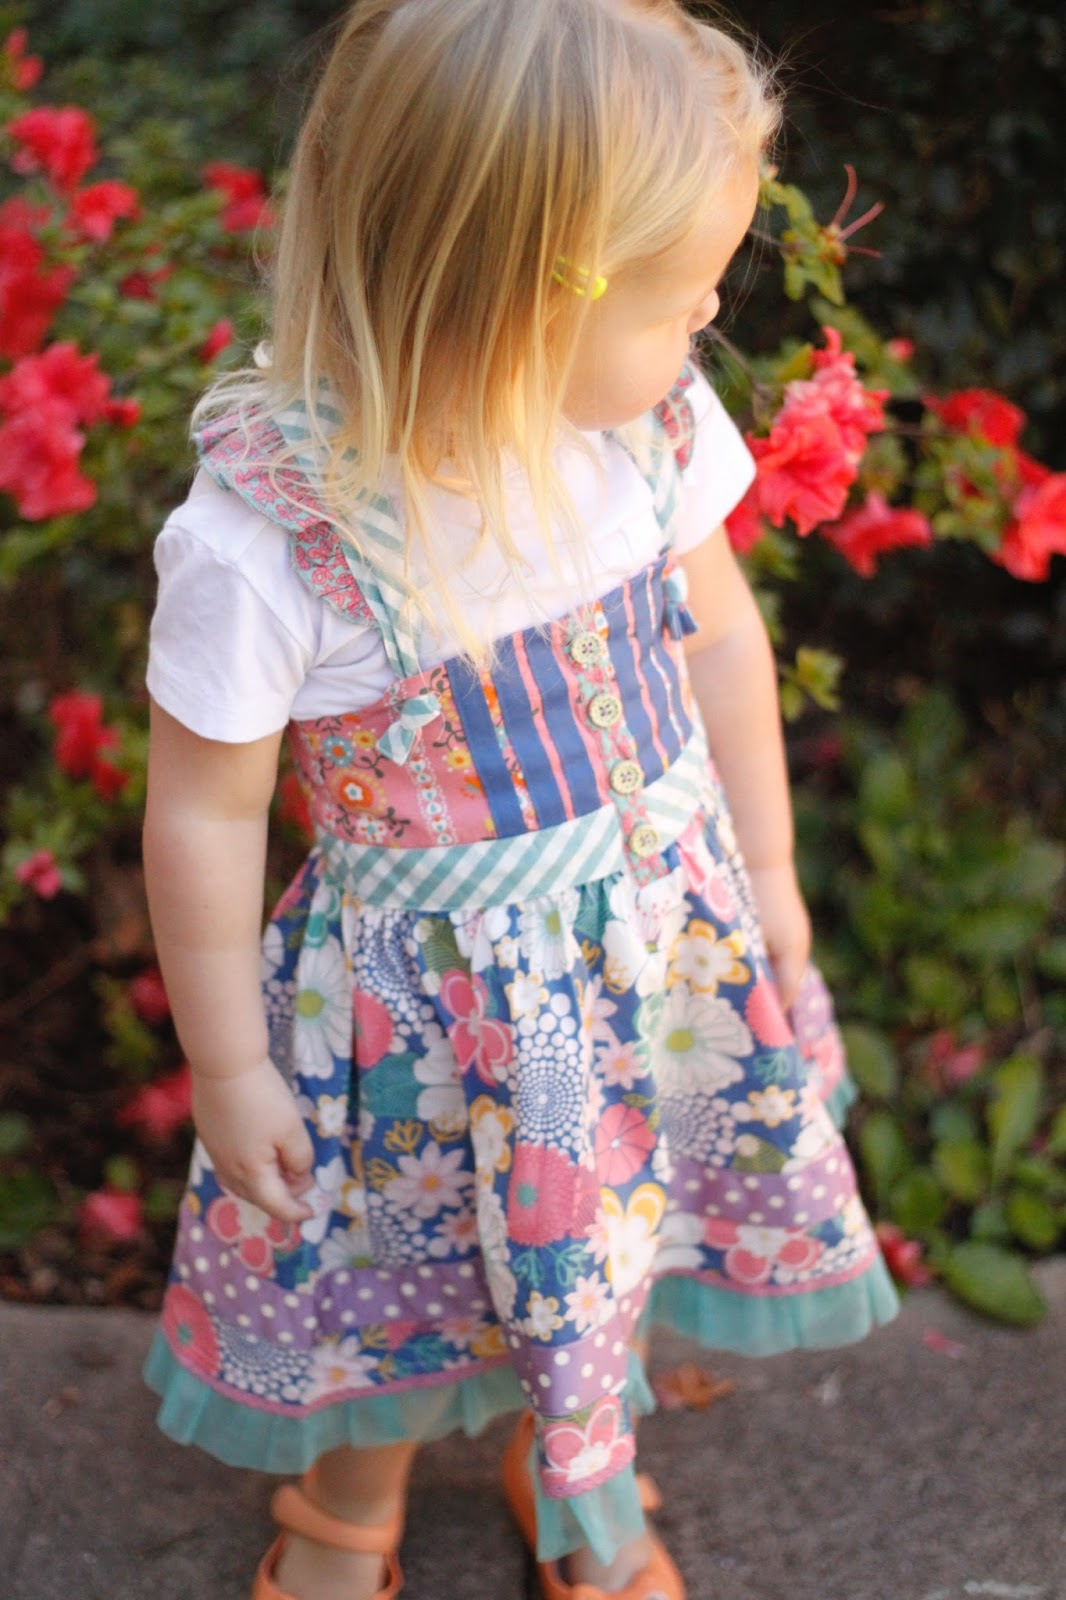 knot dress review from the Matilda Jane fall collection